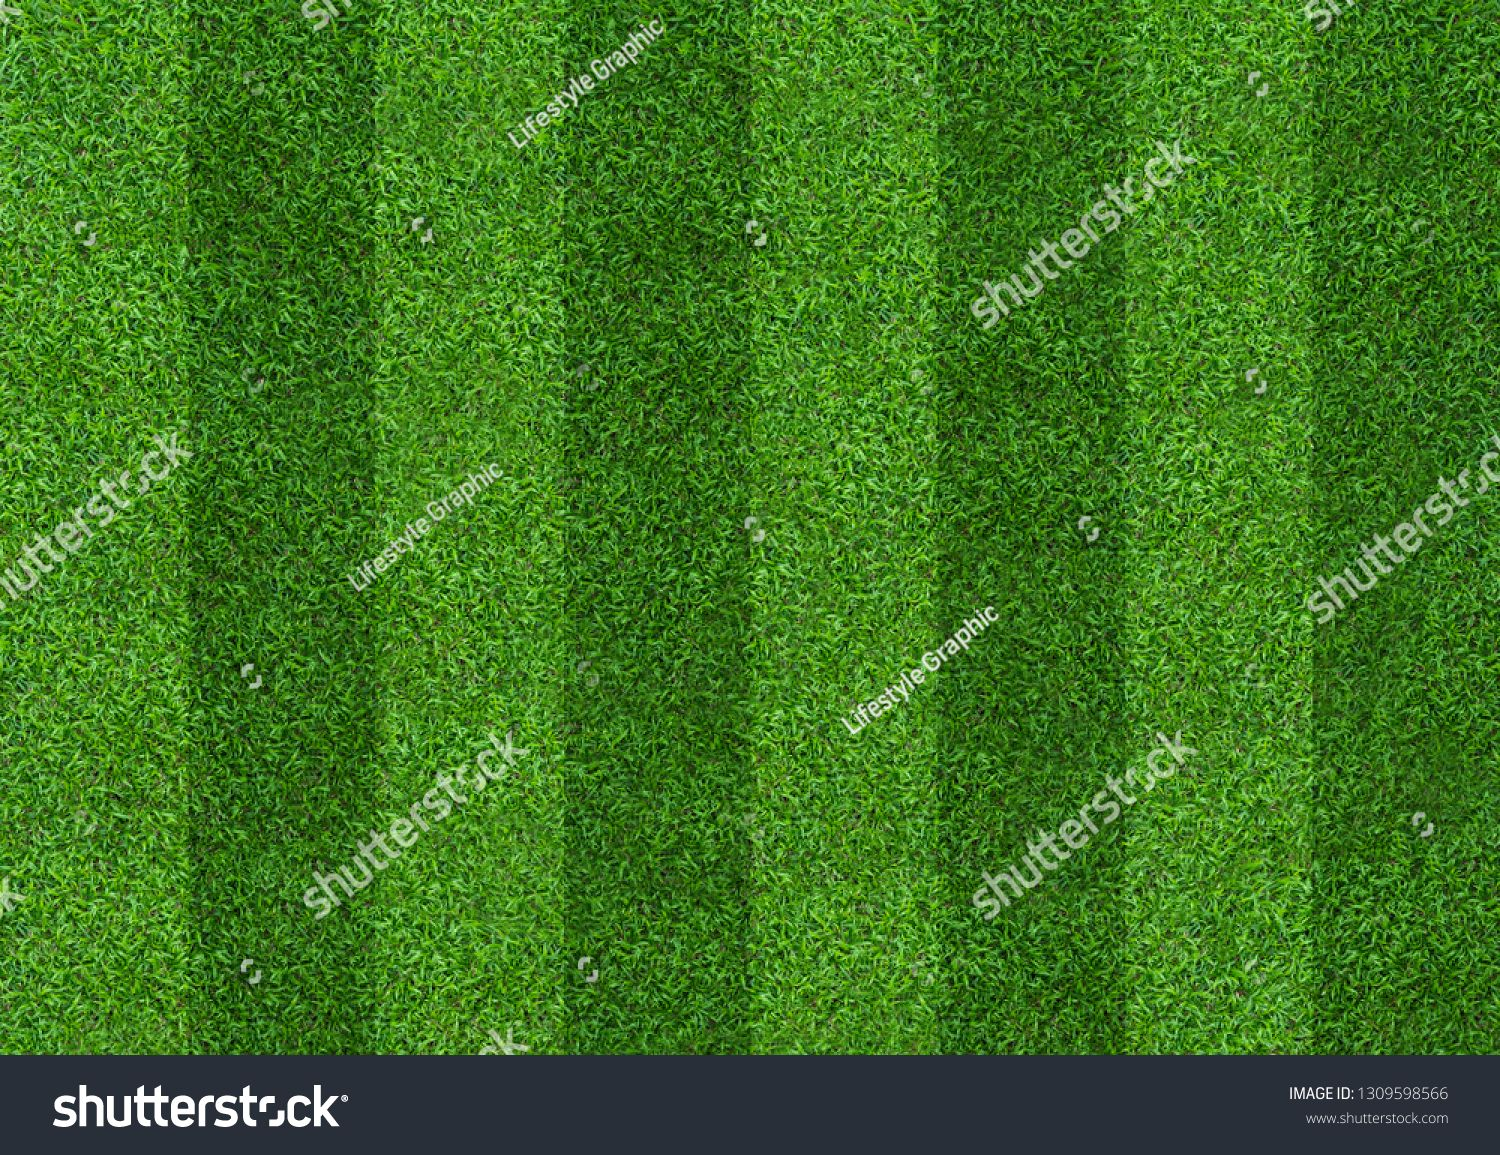 Green Grass Field Background For Soccer And Football Sports Green Lawn Pattern And Texture Background Close Up Image Ad Af Grass Field Green Grass Field